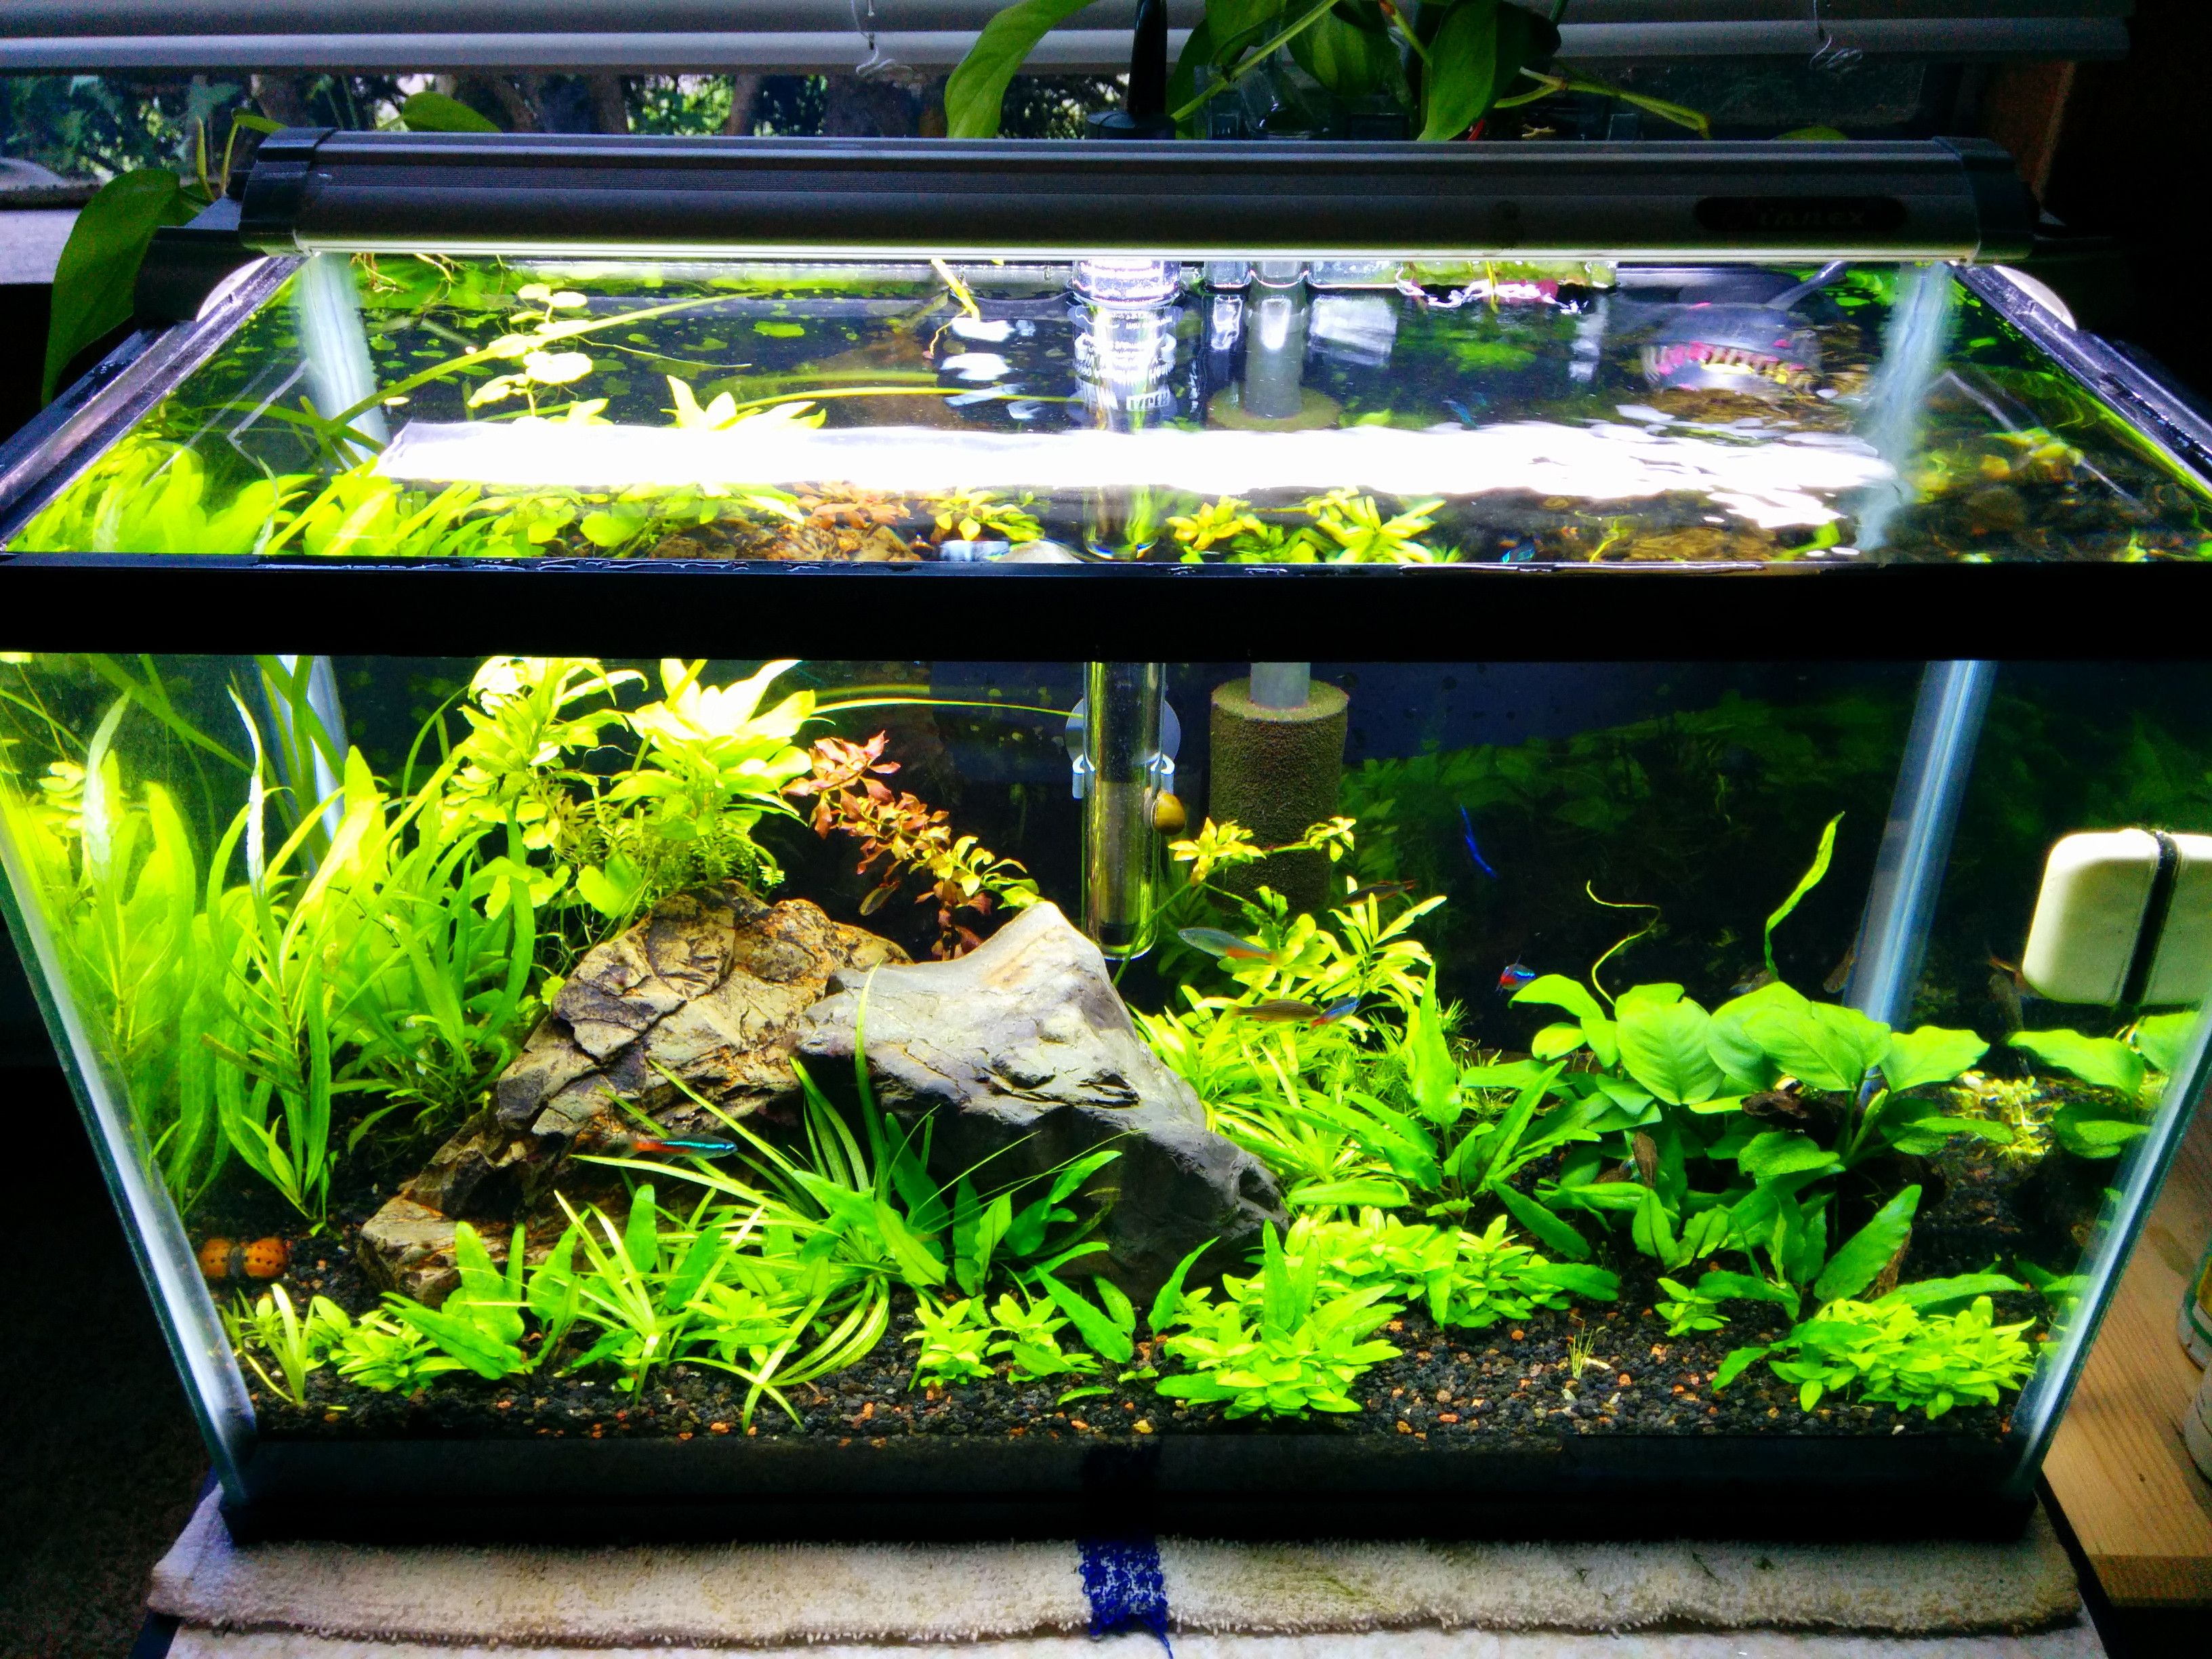 10 Gallon Planted Over A Year With This Setup Betta Fish Tank Fish Tank Plants Fish Tank Terrarium